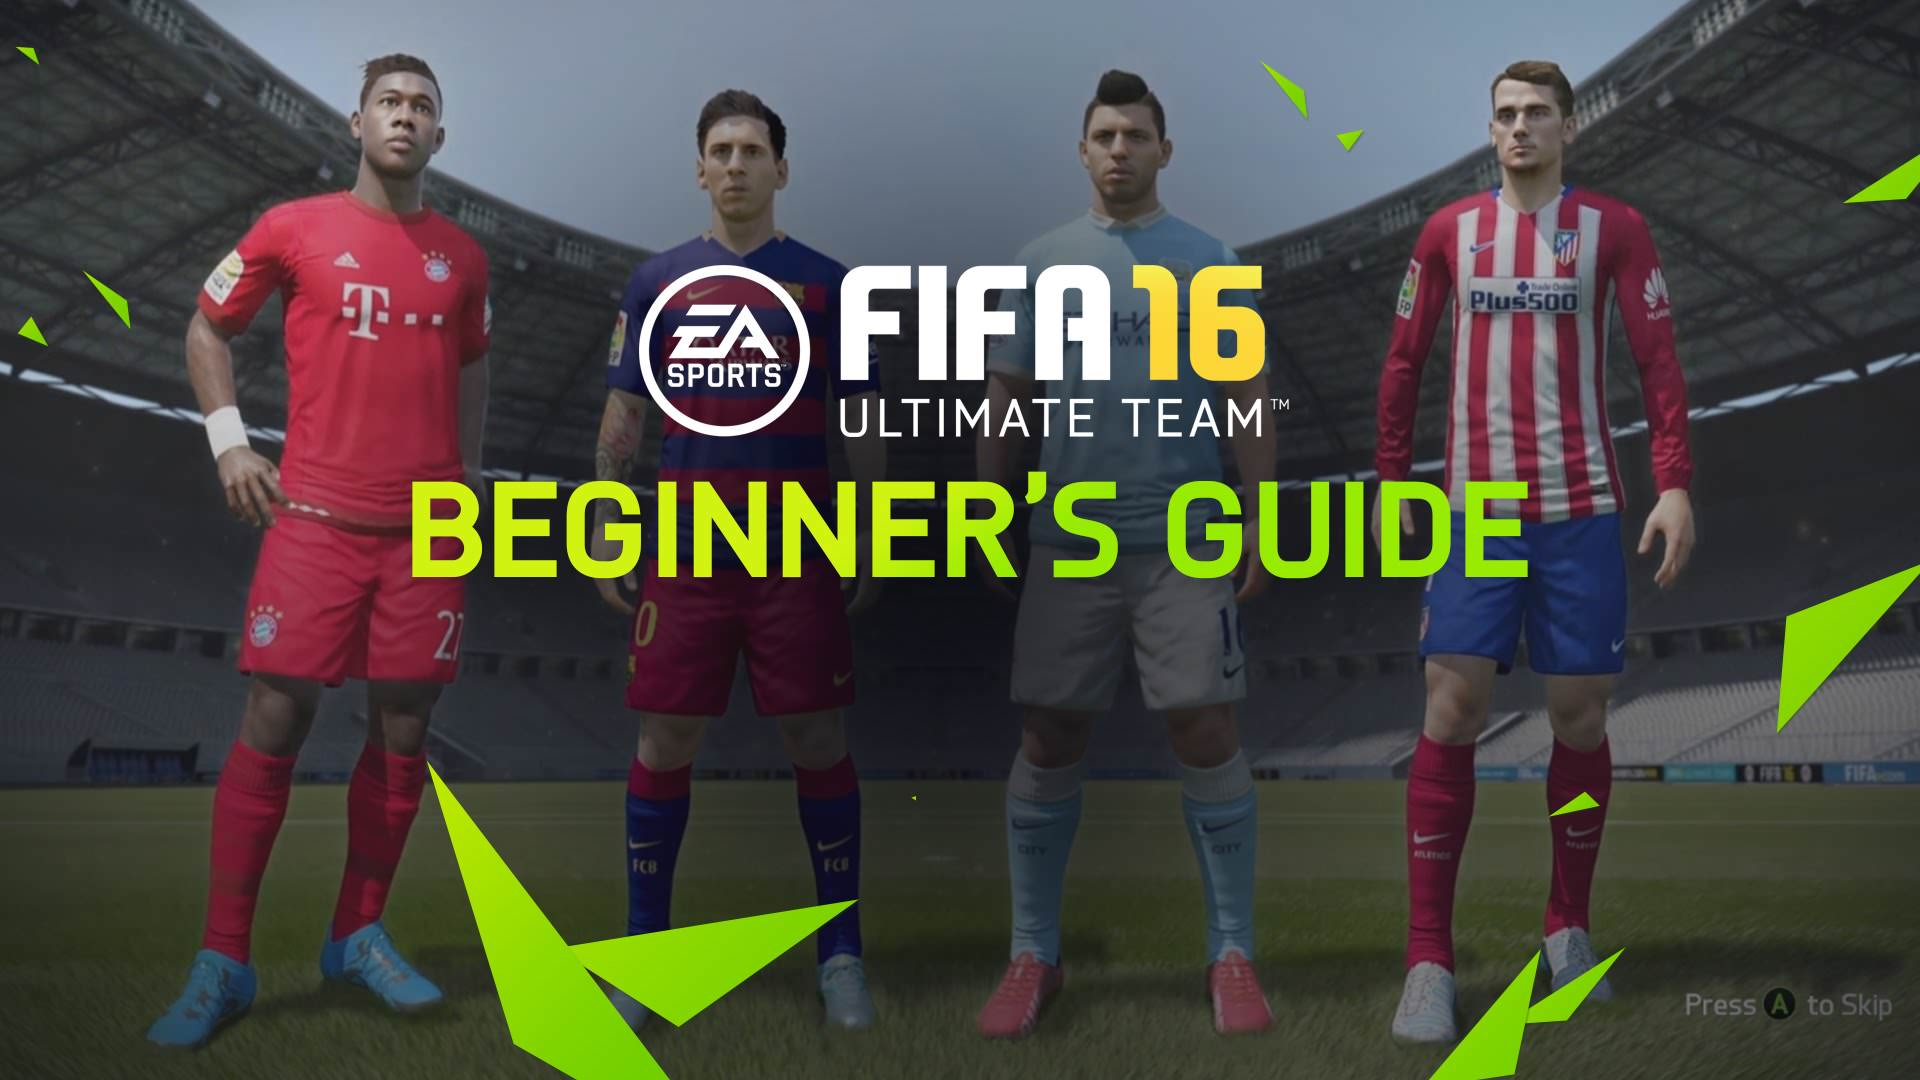 FIFA 16 Ultimate Team – A Beginner's Guide